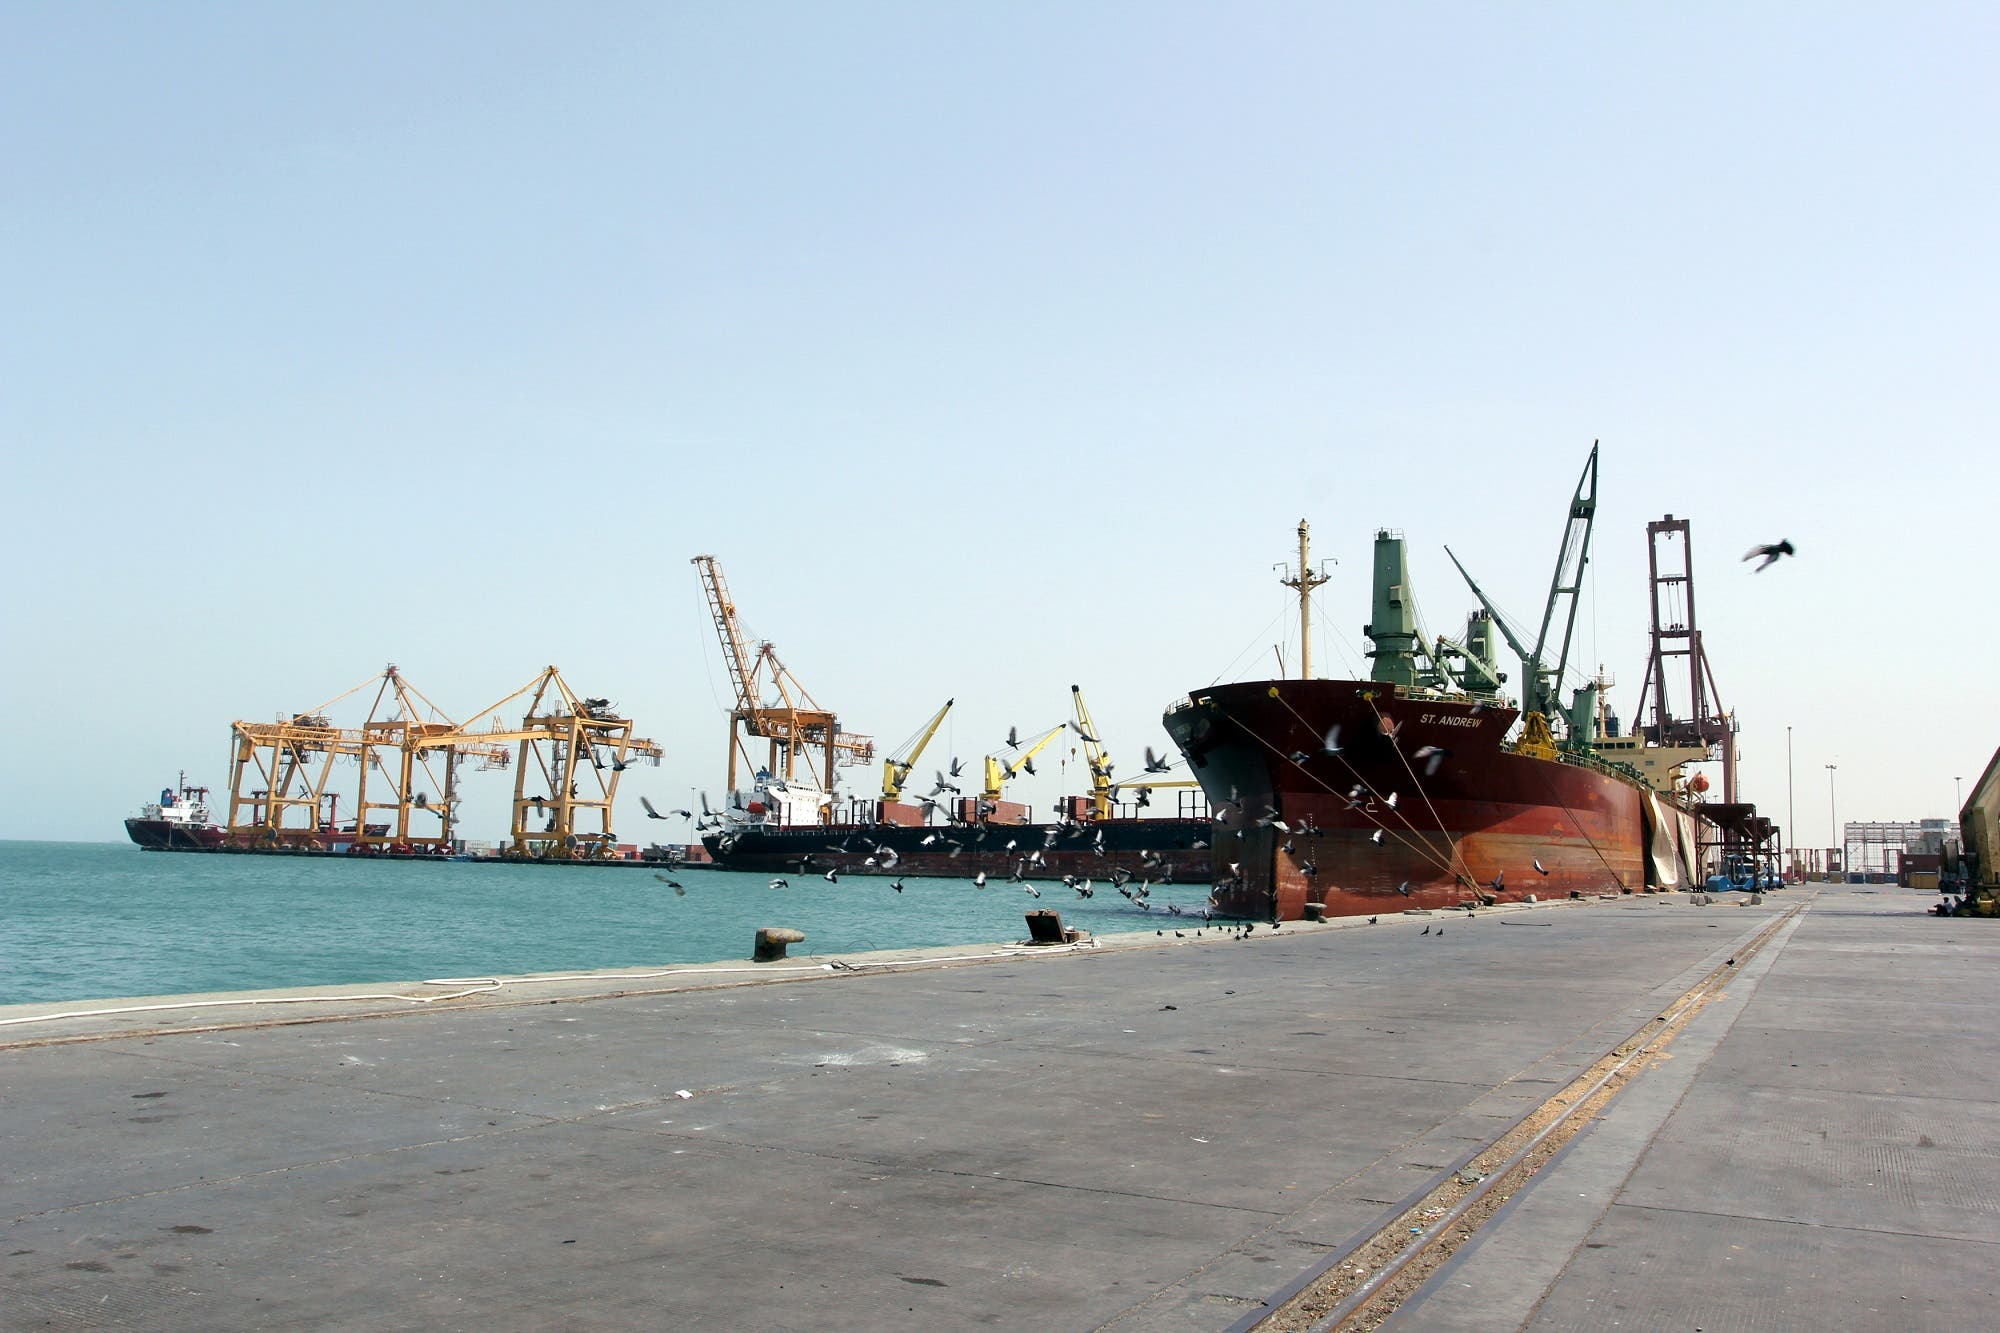 Hudaydah port and province is controlled by the Iran-aligned Houthis and has been the entry point for 70 percent of Yemen's food supplies. (Reuters)